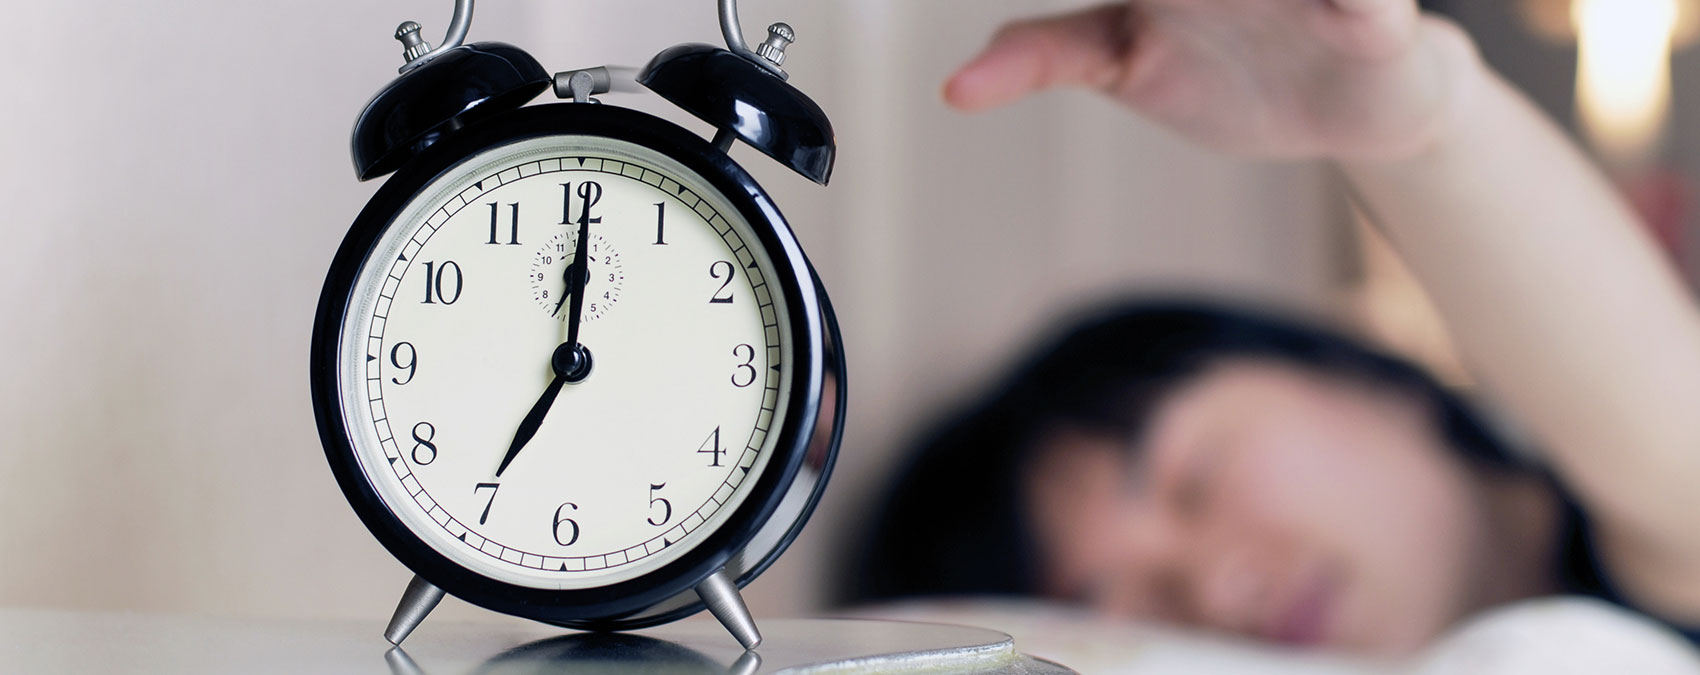 Stuck in a Rut? A/B Test Your Morning Routine